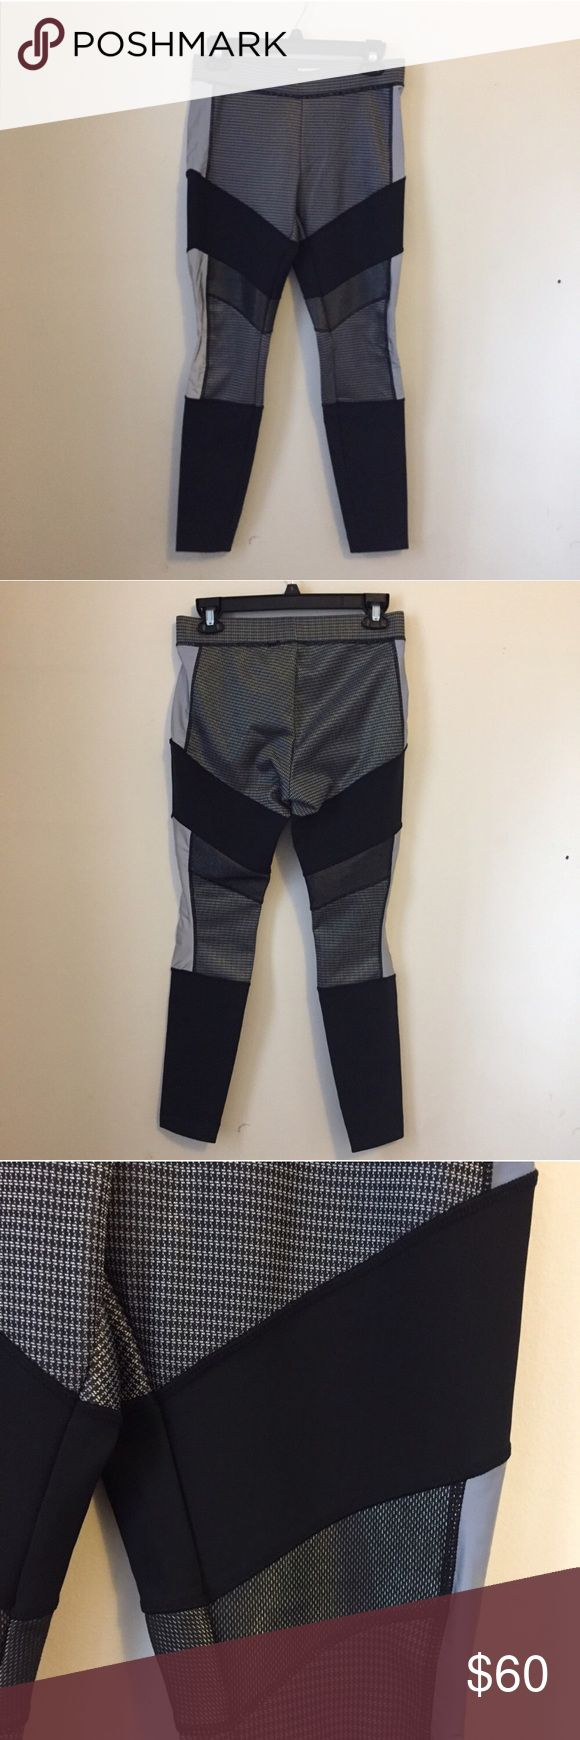 NWT Alexander Wang for H&M Leggings 8 Black, silver, and grey leggings from the sold out Alexander Wang collection for H&M. These are brand new with tags attached. Size 8. H&M Pants Leggings